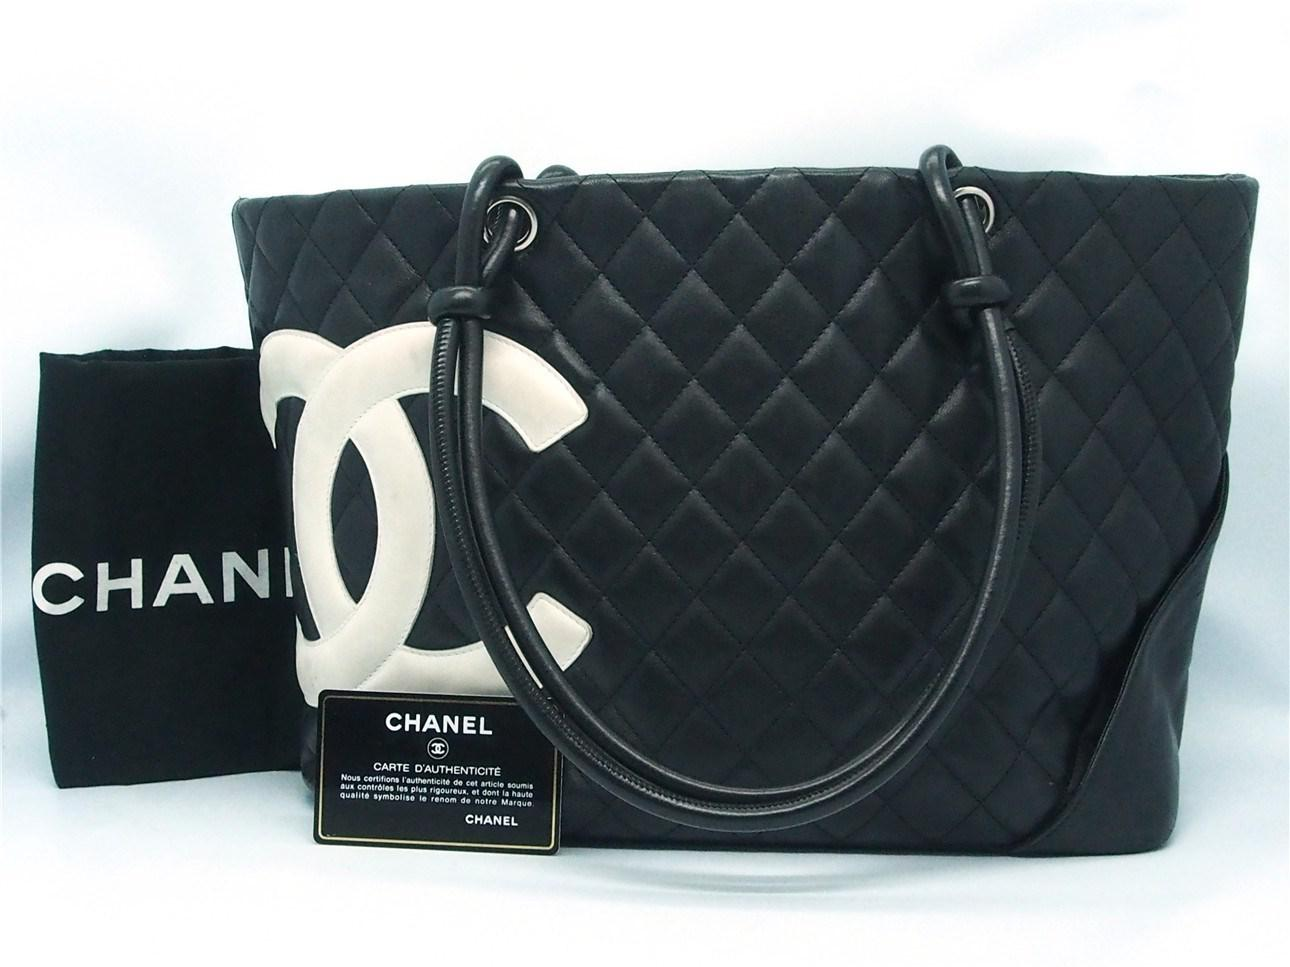 b3f144352db3 Chanel Authentic Black Quilted Leather Cambon Large Shopper Tote Bag ...